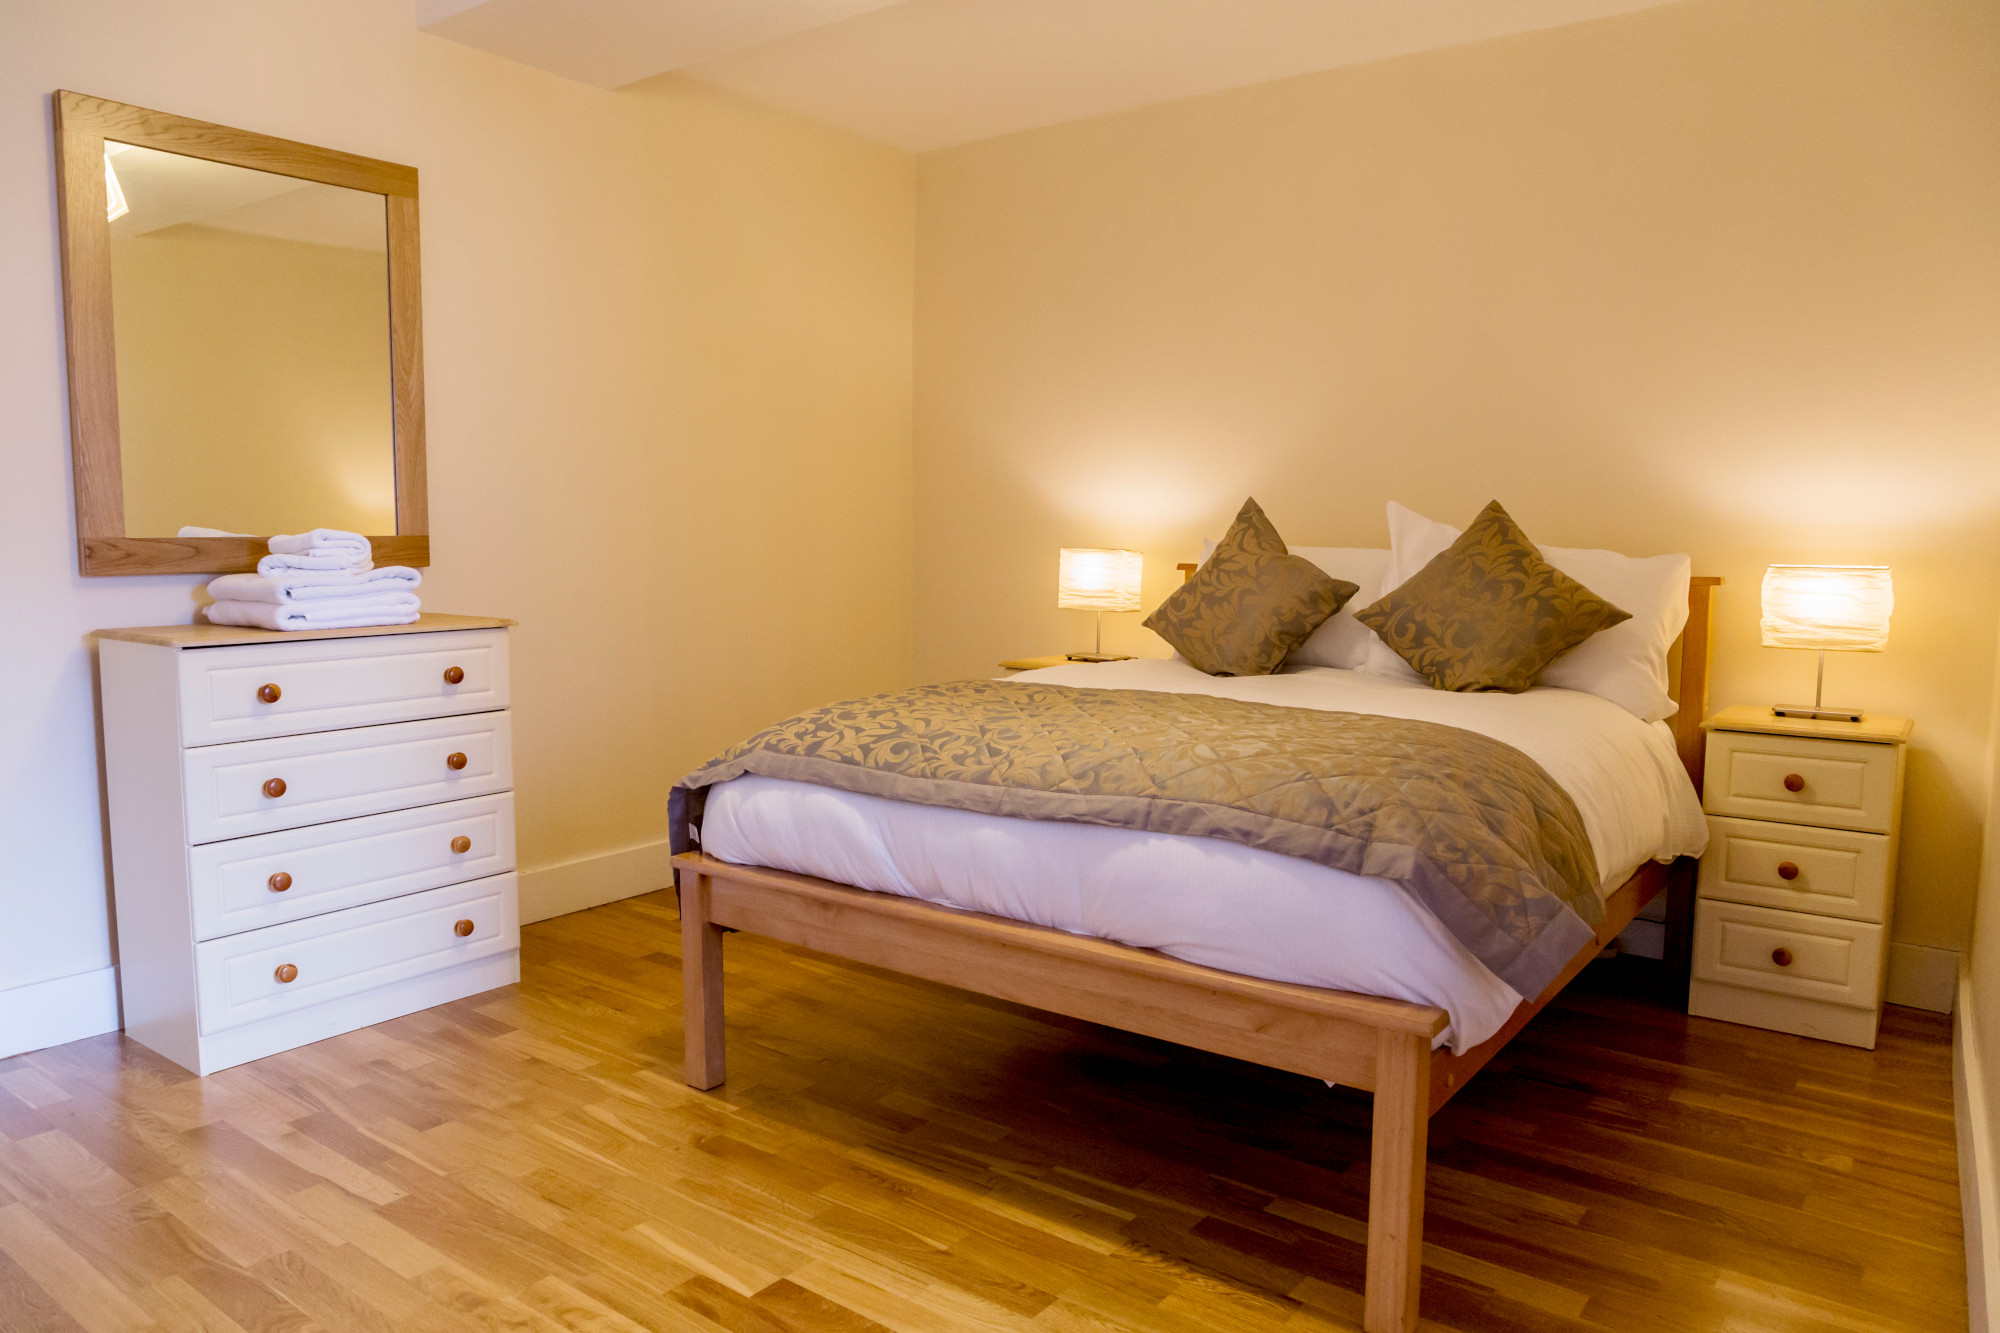 Dublin one bedroom apartment - Bed